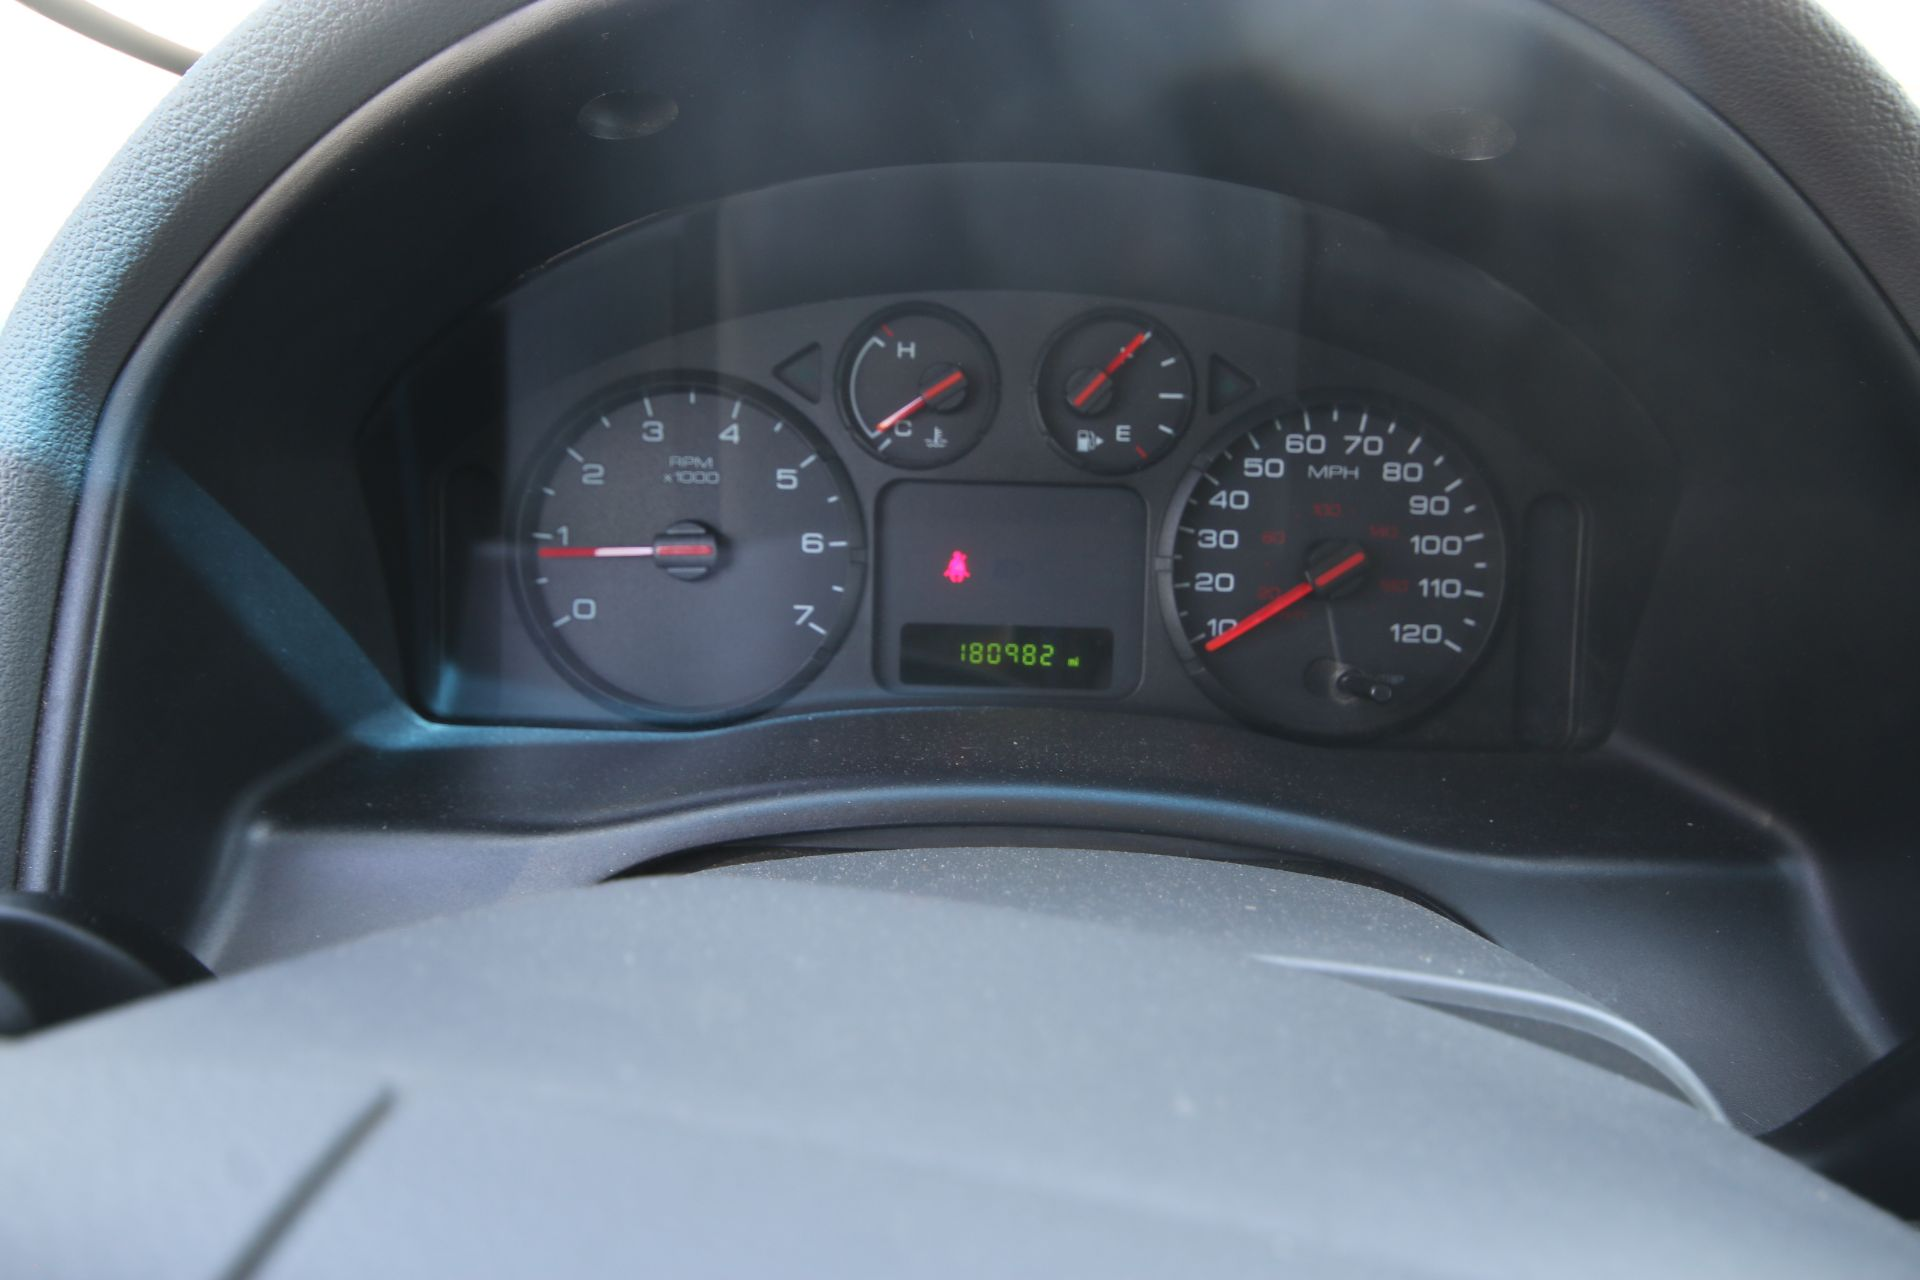 2006 Ford Freestyle, VIN #: 1FMDKO11X6GA41766, with 108,982 Miles, License Plate #: 5NGZ608, Started - Image 3 of 22